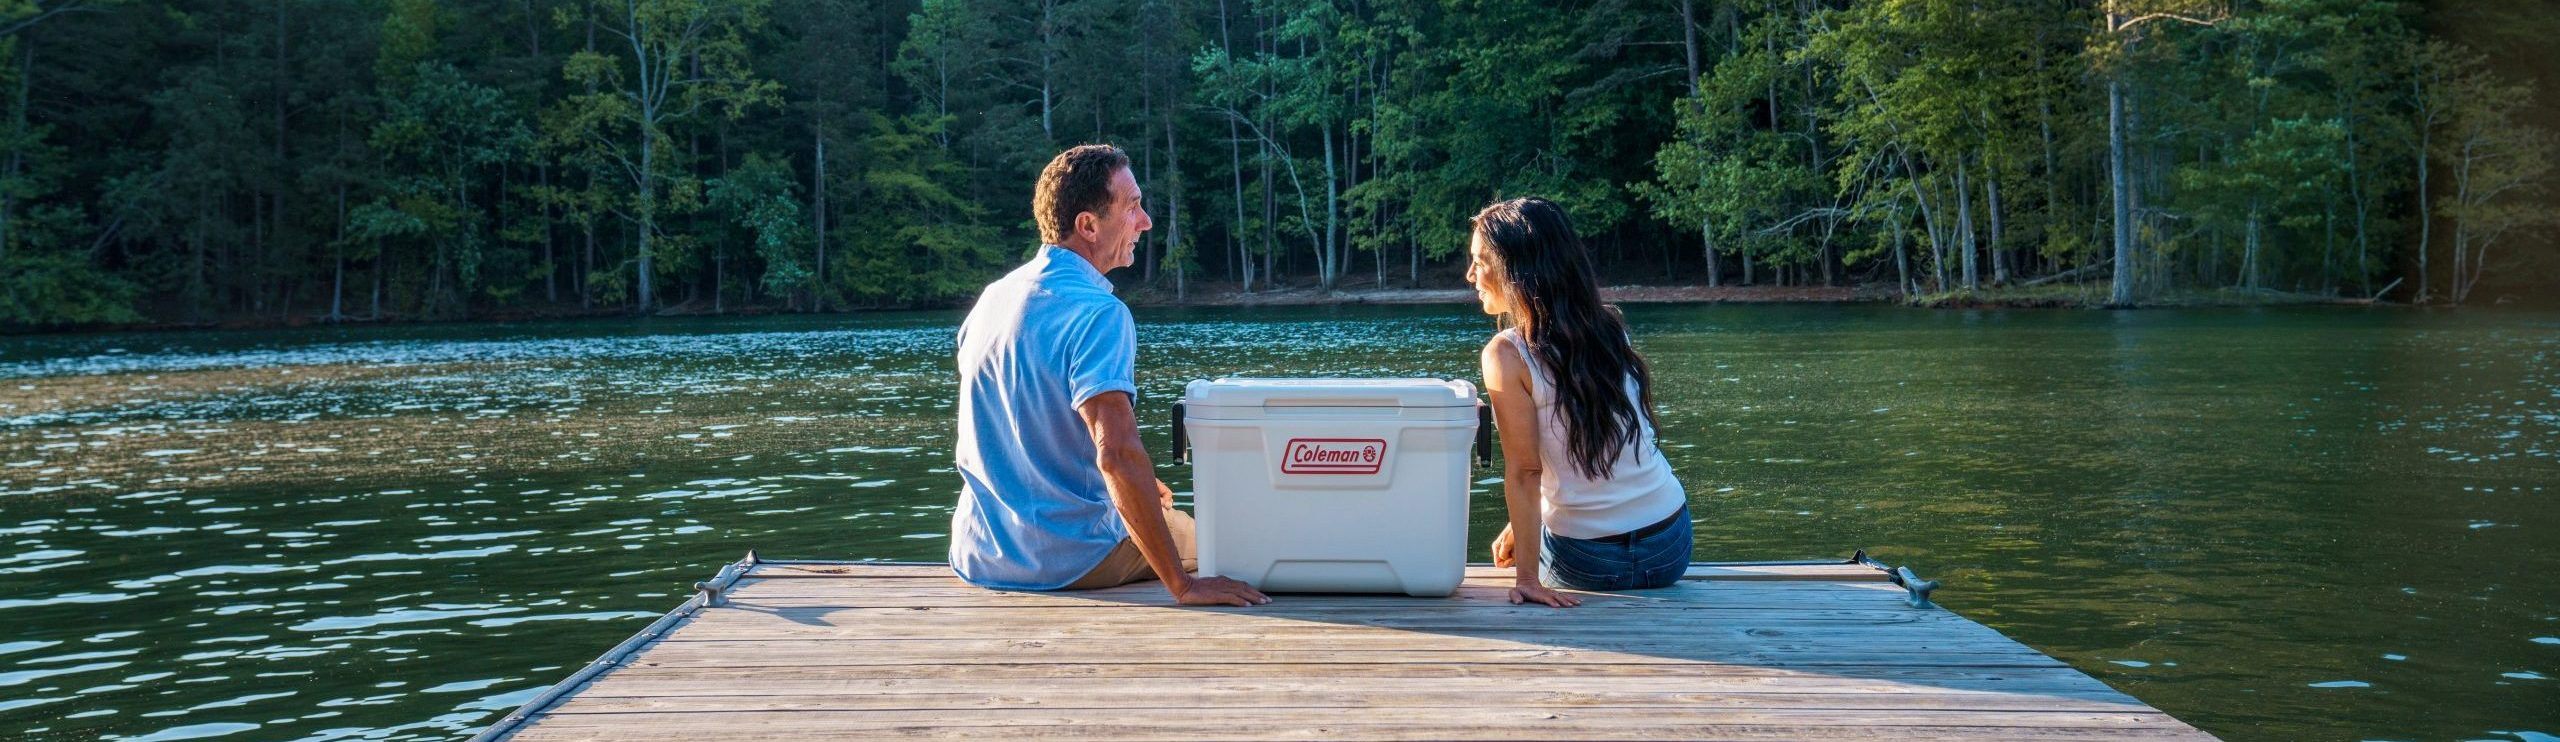 Coolers Review